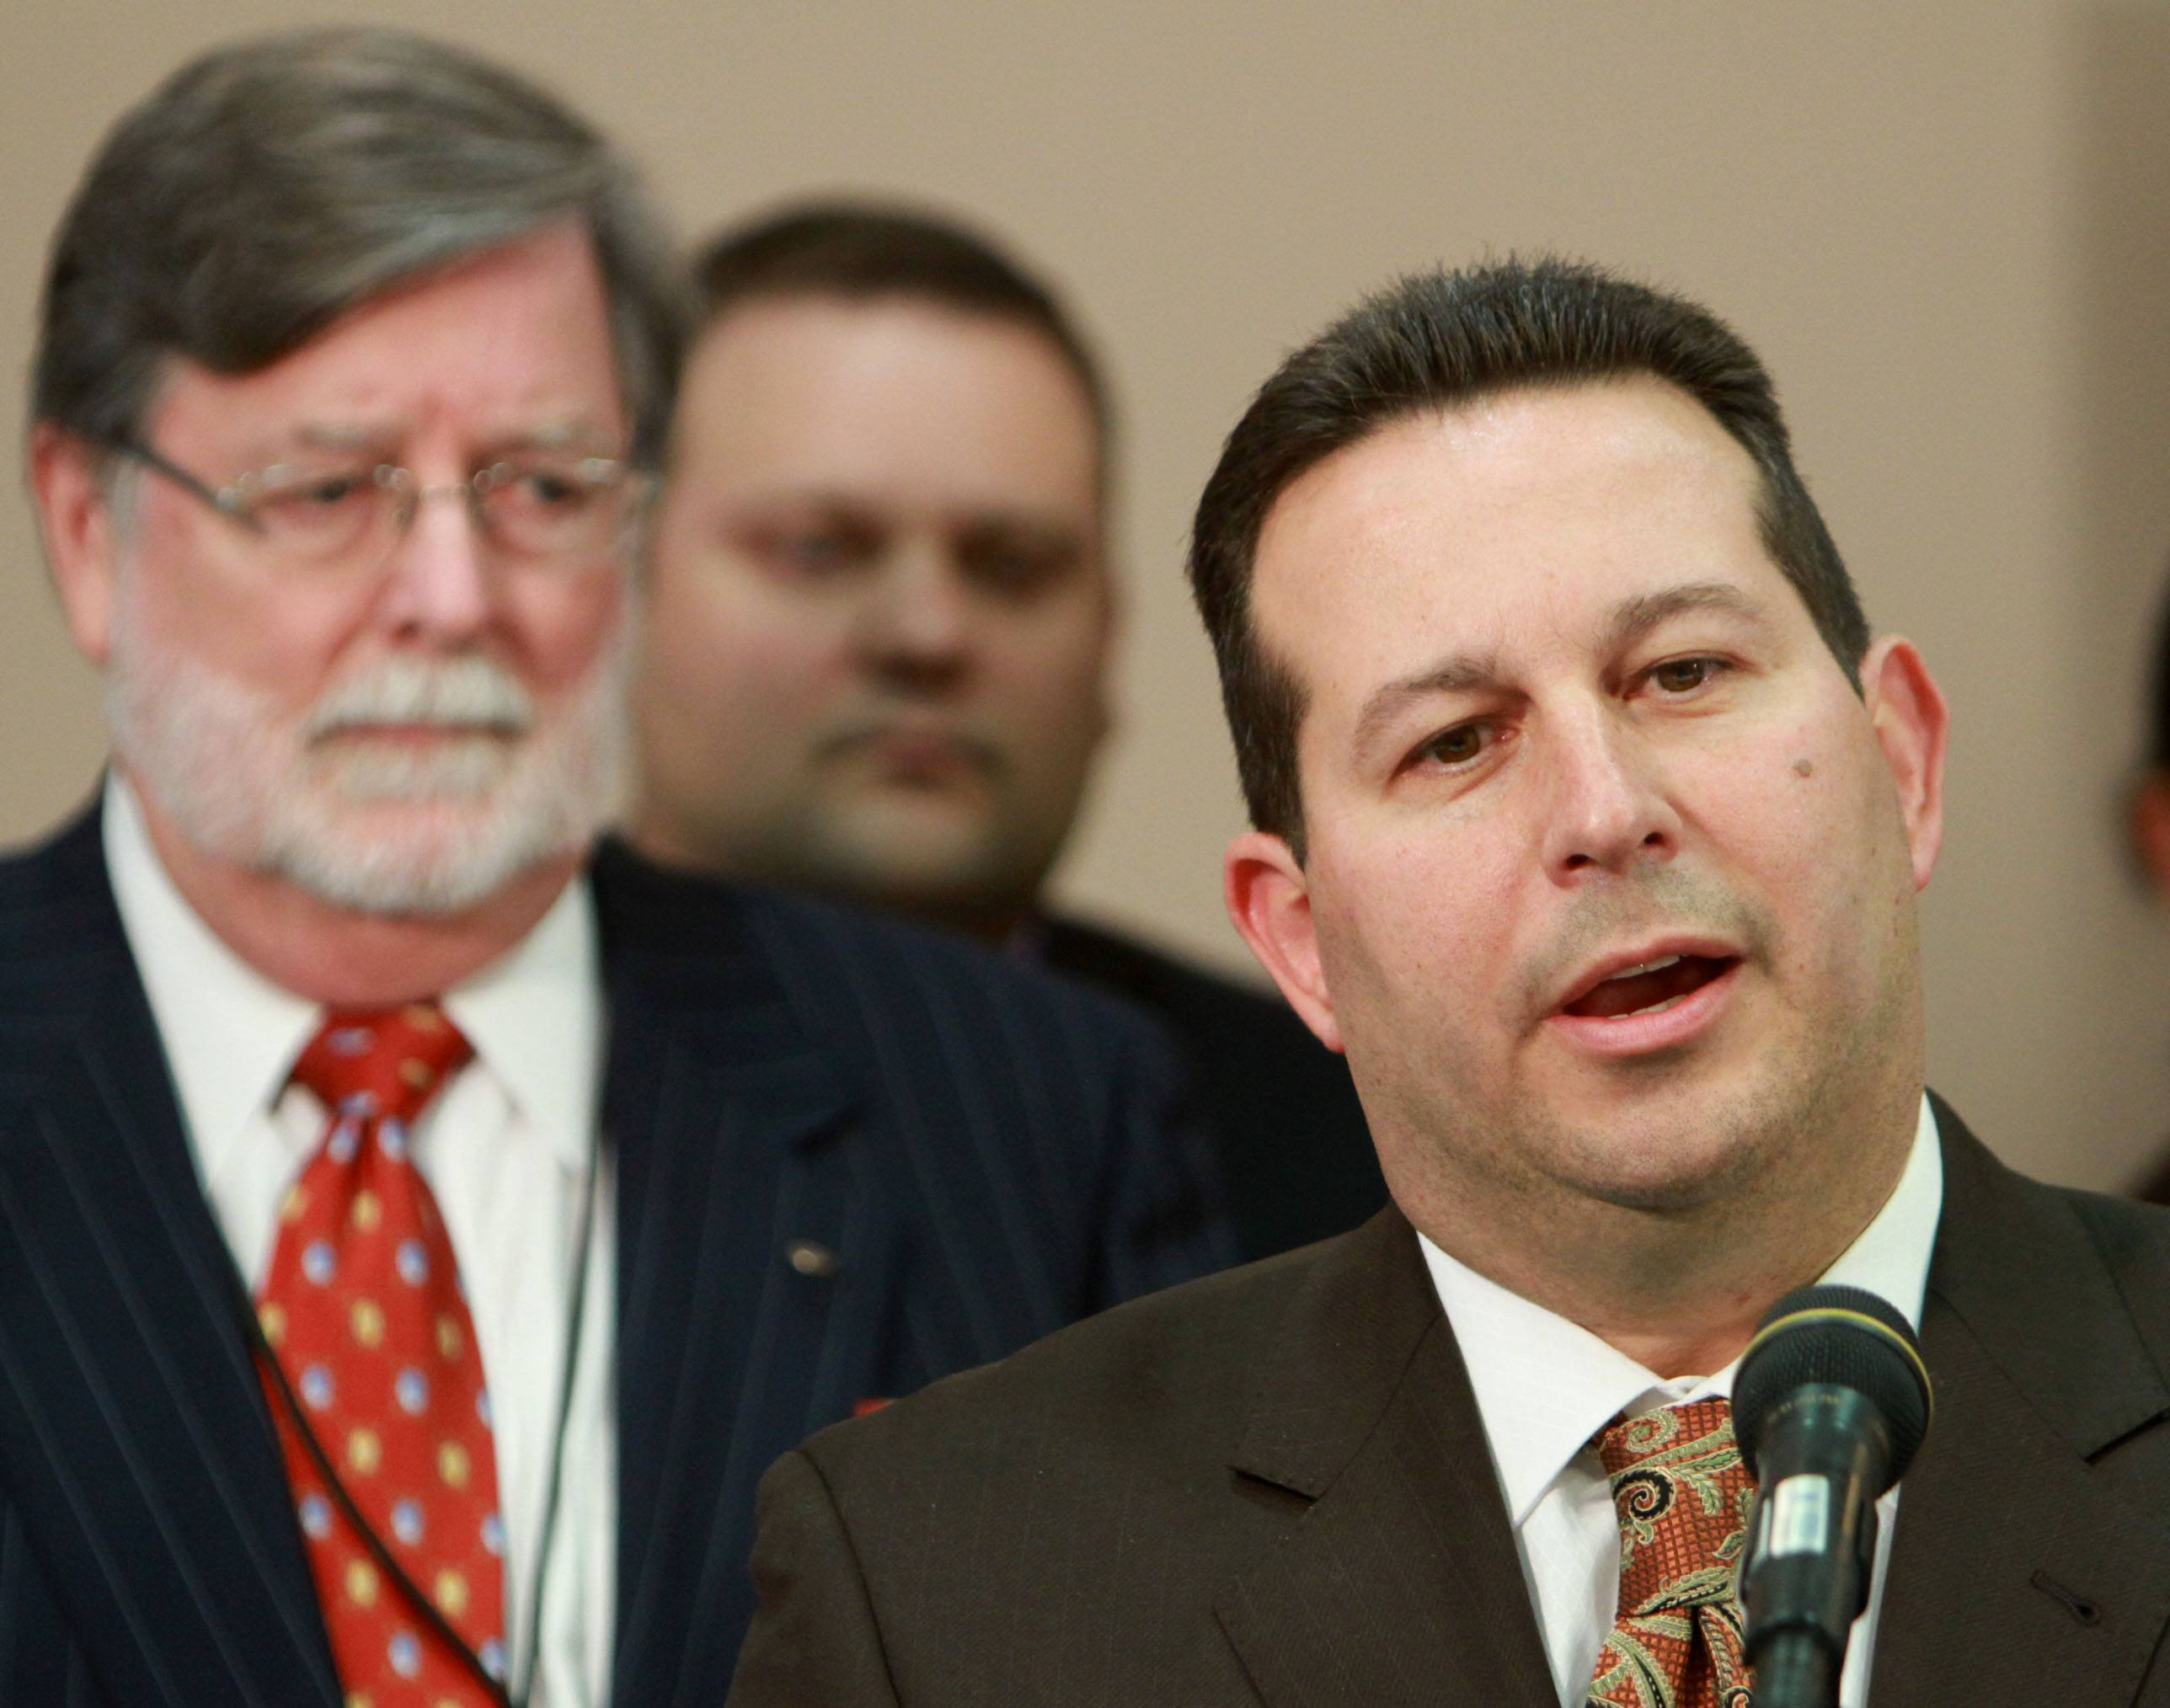 Attorney Jose Baez, right, lead defense counsel for Casey Anthony was criticized by many legal pundits for his strategy and loosely throwing around allegations of molestation and incest.